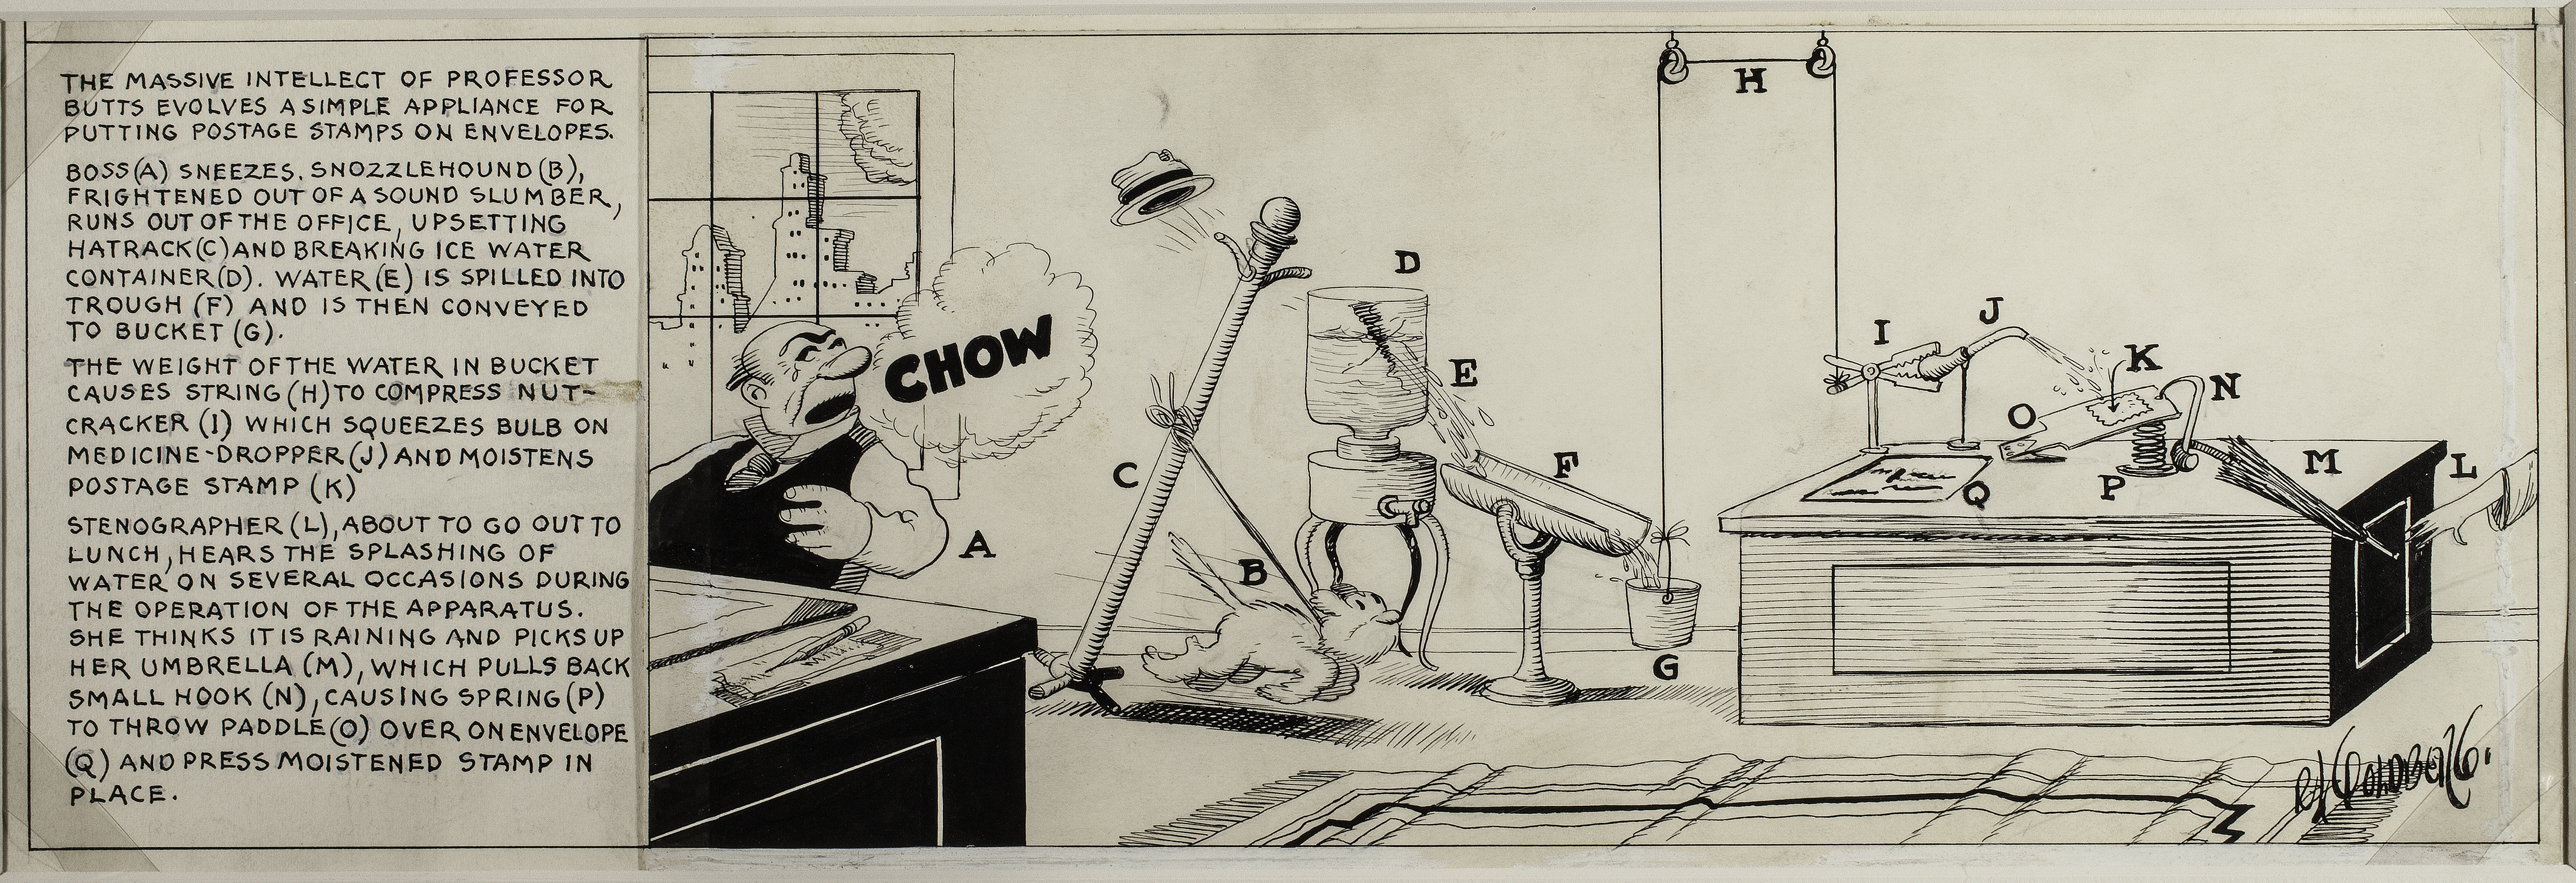 Top: In 1995, a postage stamp honored the life and work of Rube Goldberg. Above: An invention for licking stamps from 1929.